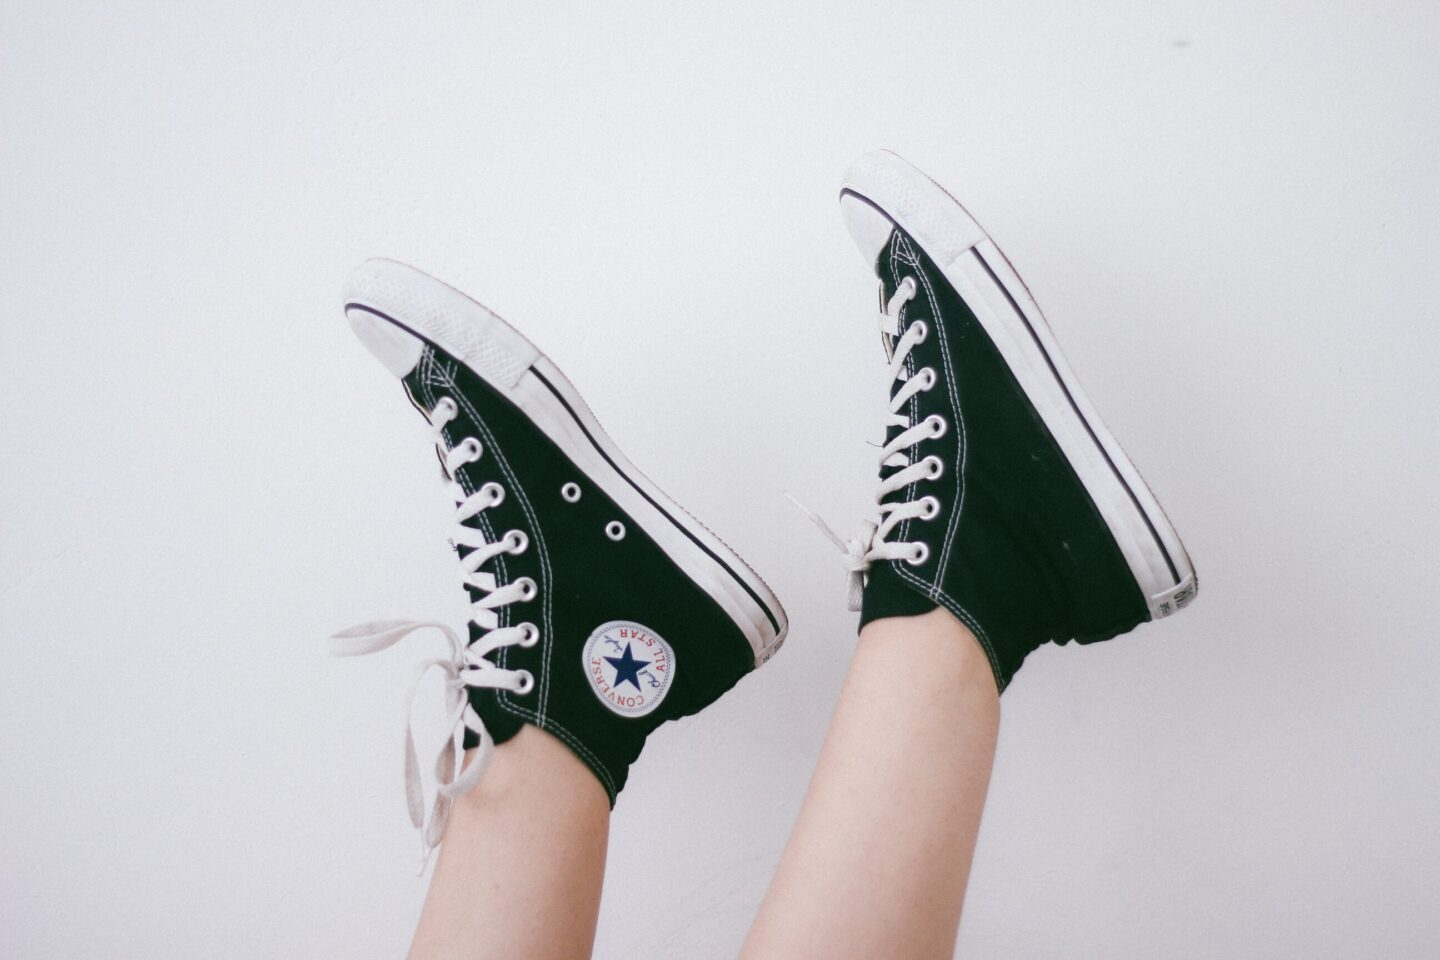 How Do I Find The Right Shoes For The Job?